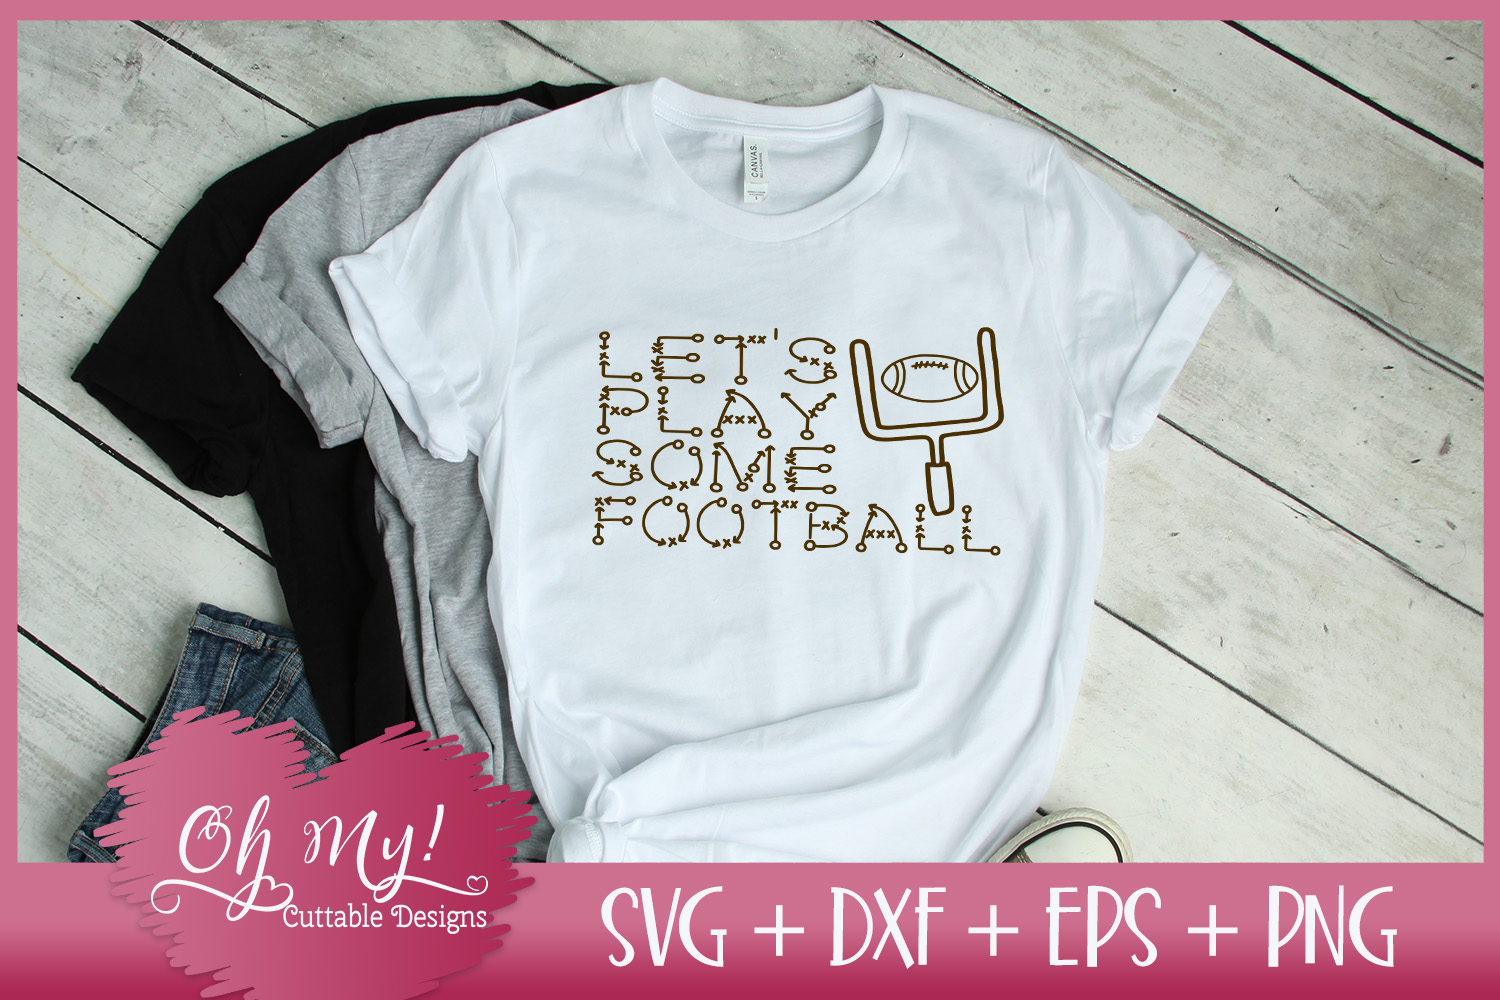 Play Football - SVG DXF EPS PNG Cutting File example image 2